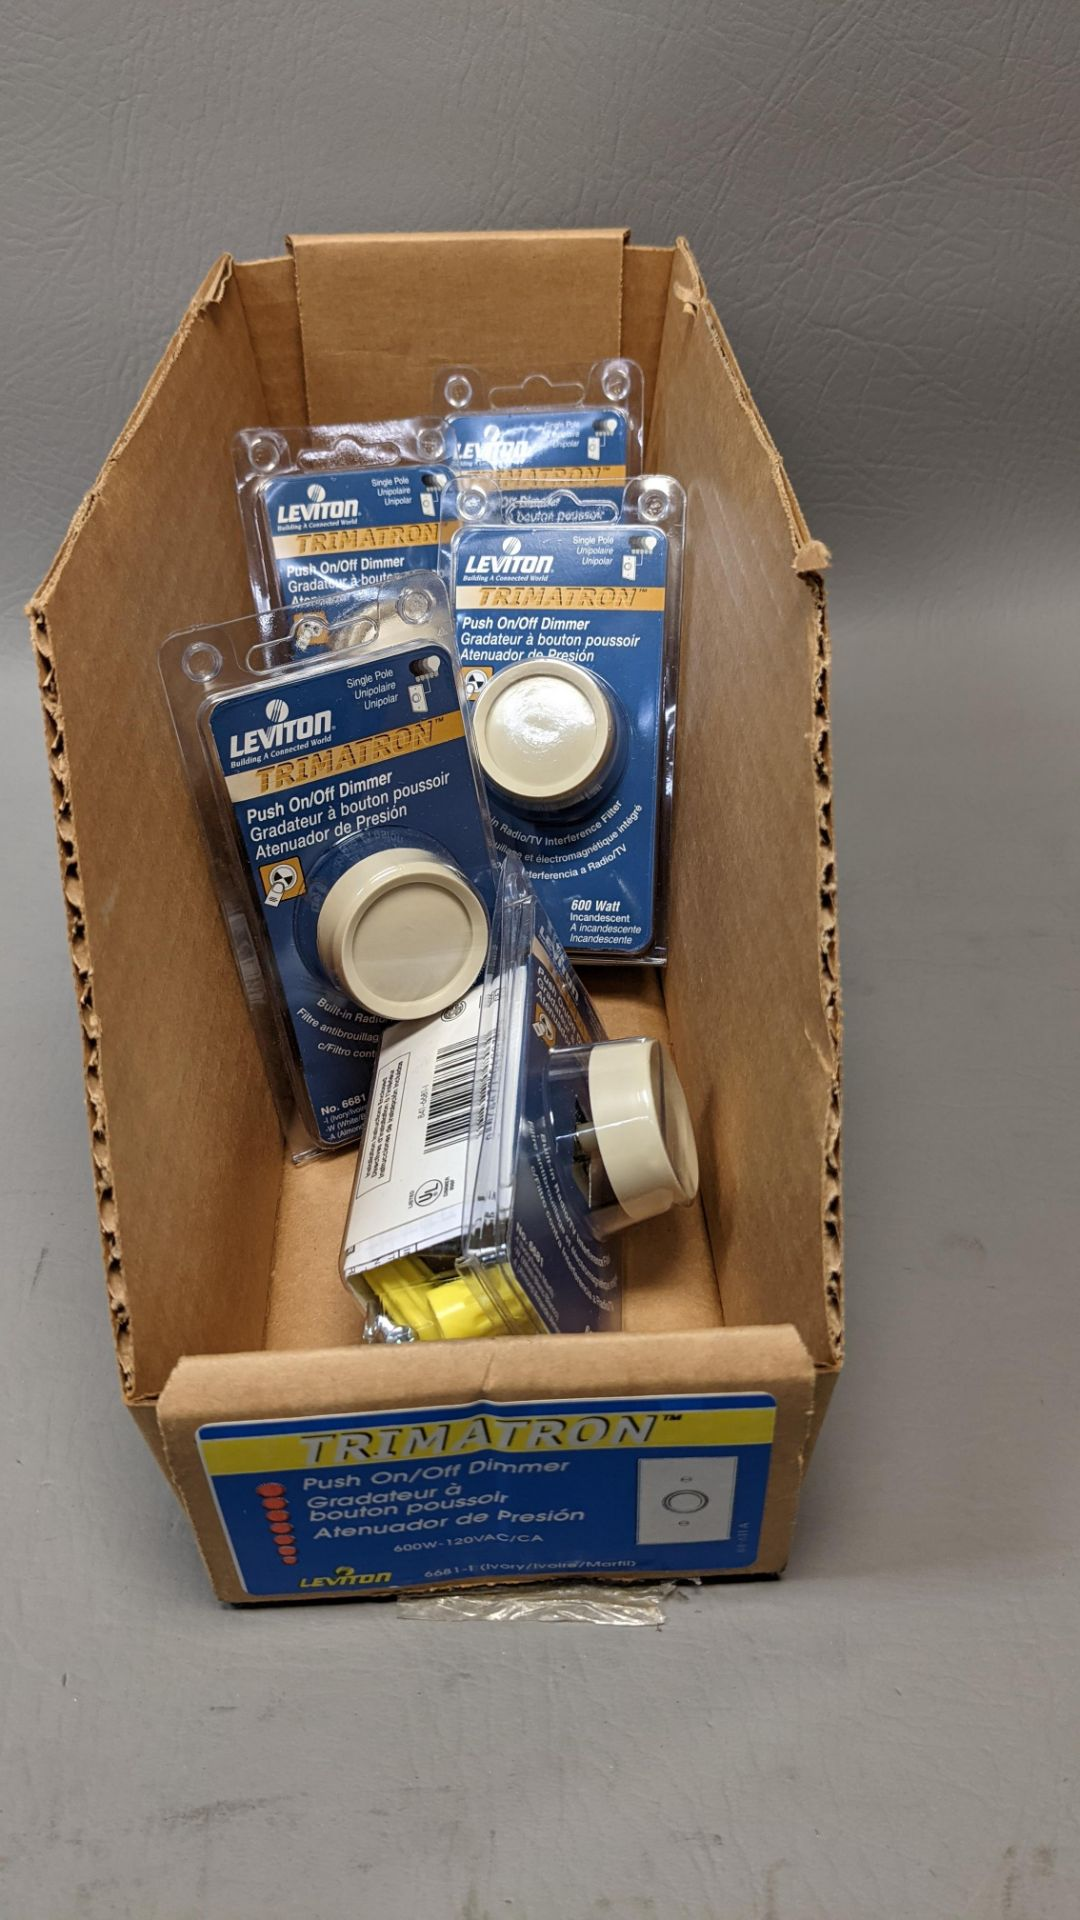 LOT OF NEW LEVITON PUSH ON/OFF LIGHT DIMMERS